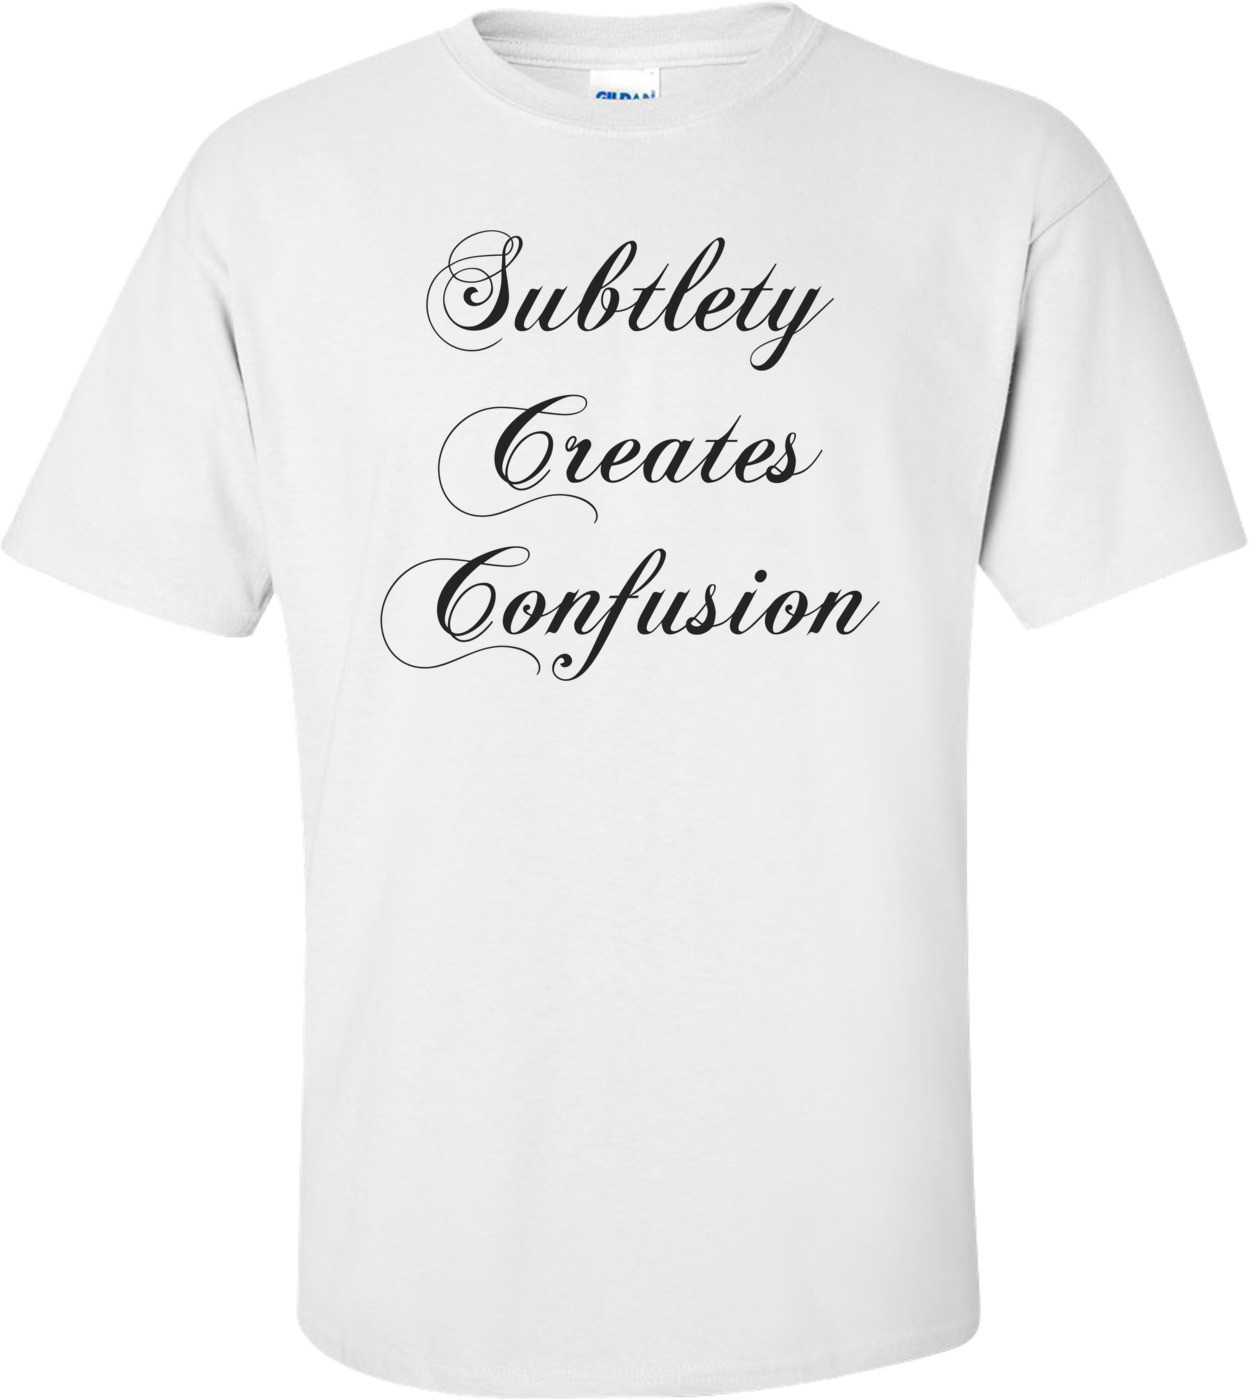 Subtlety Creates Confusion Shirt